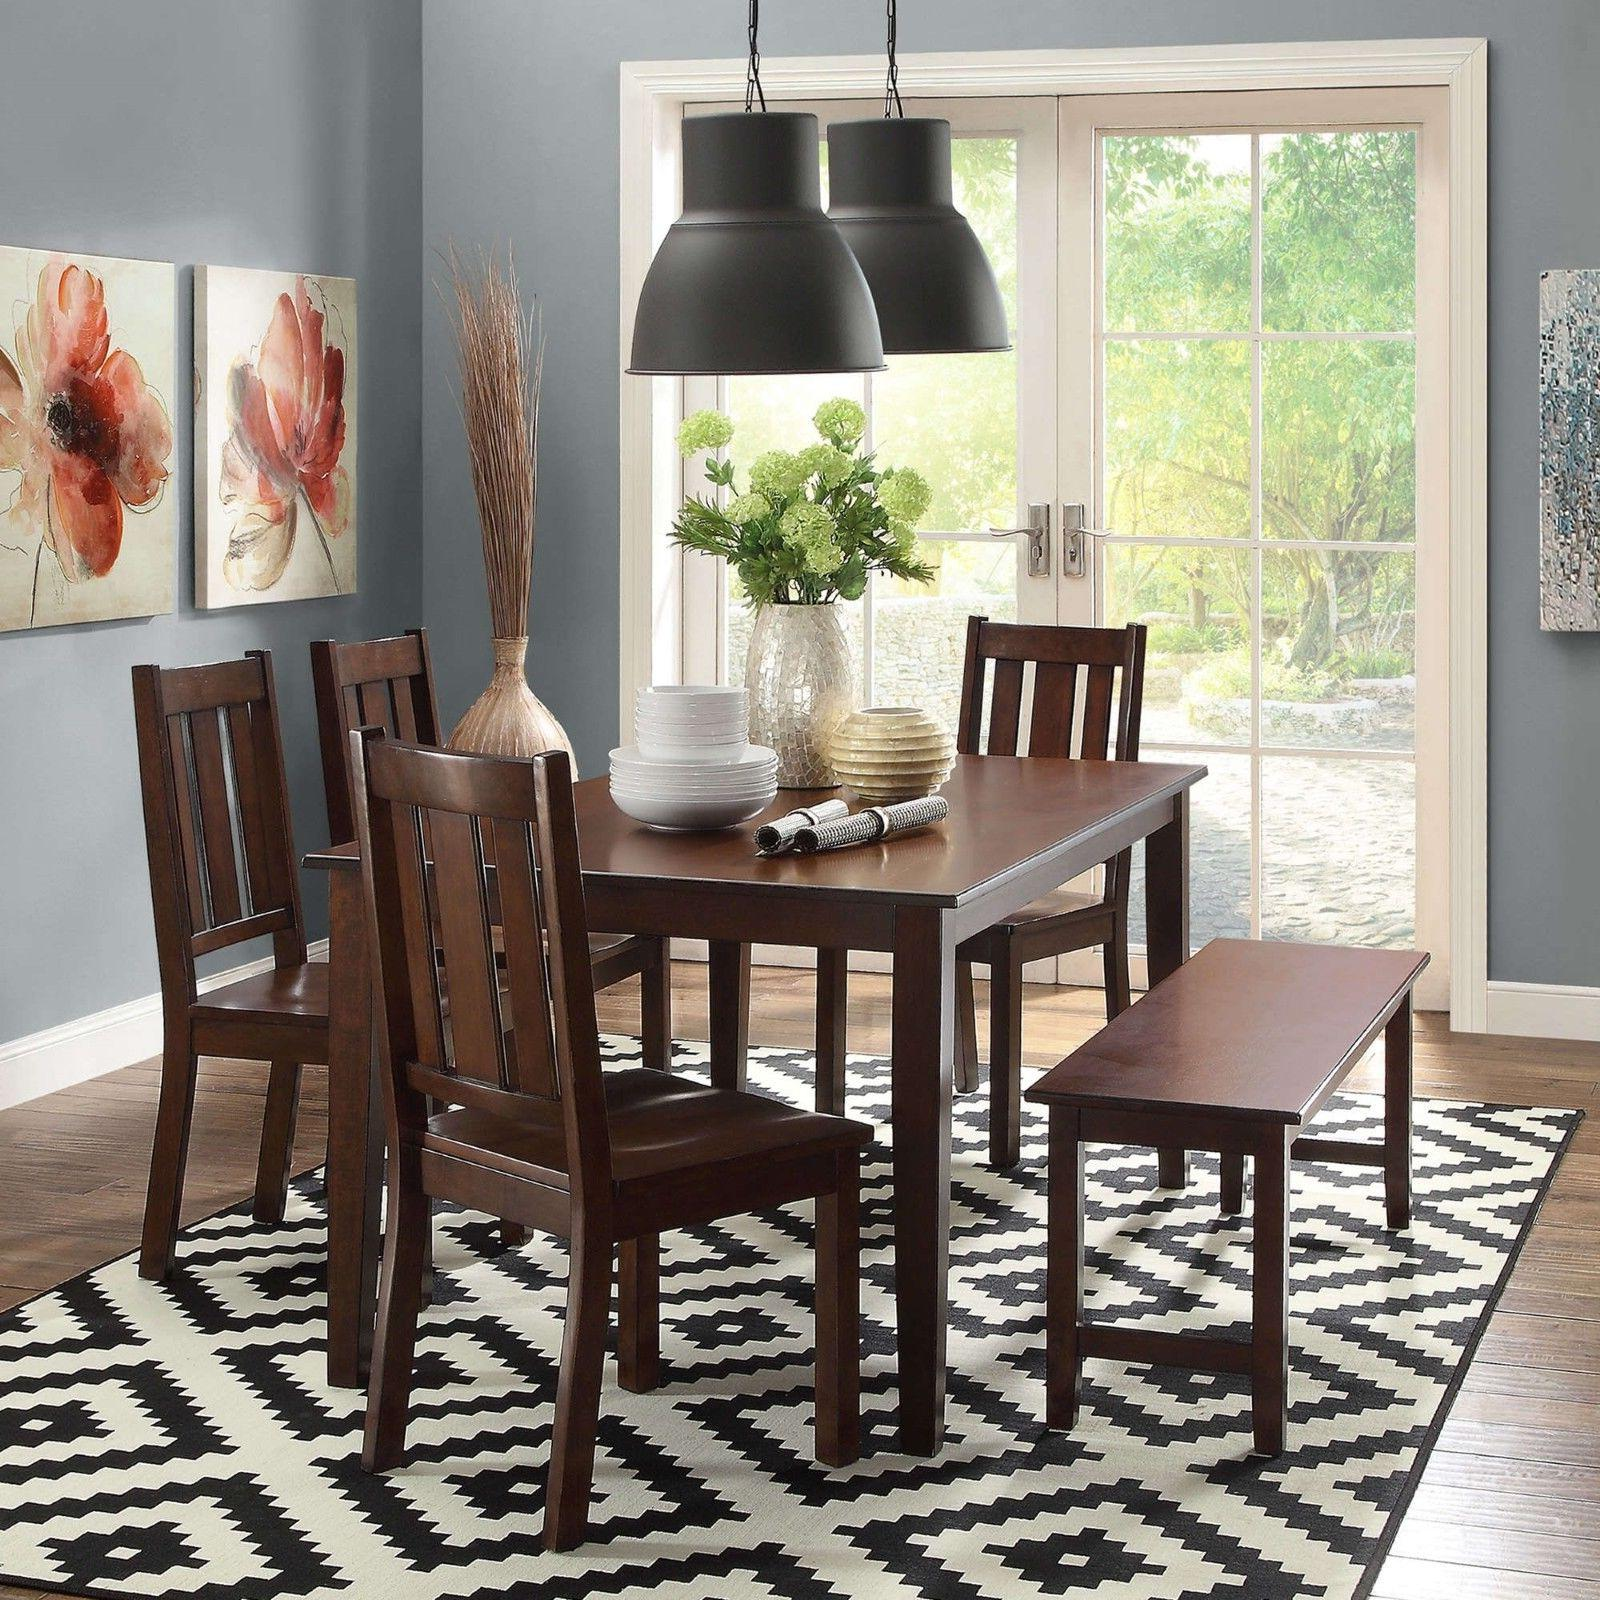 7 Piece Dining Home Chairs Classic Mocha Solid Wood